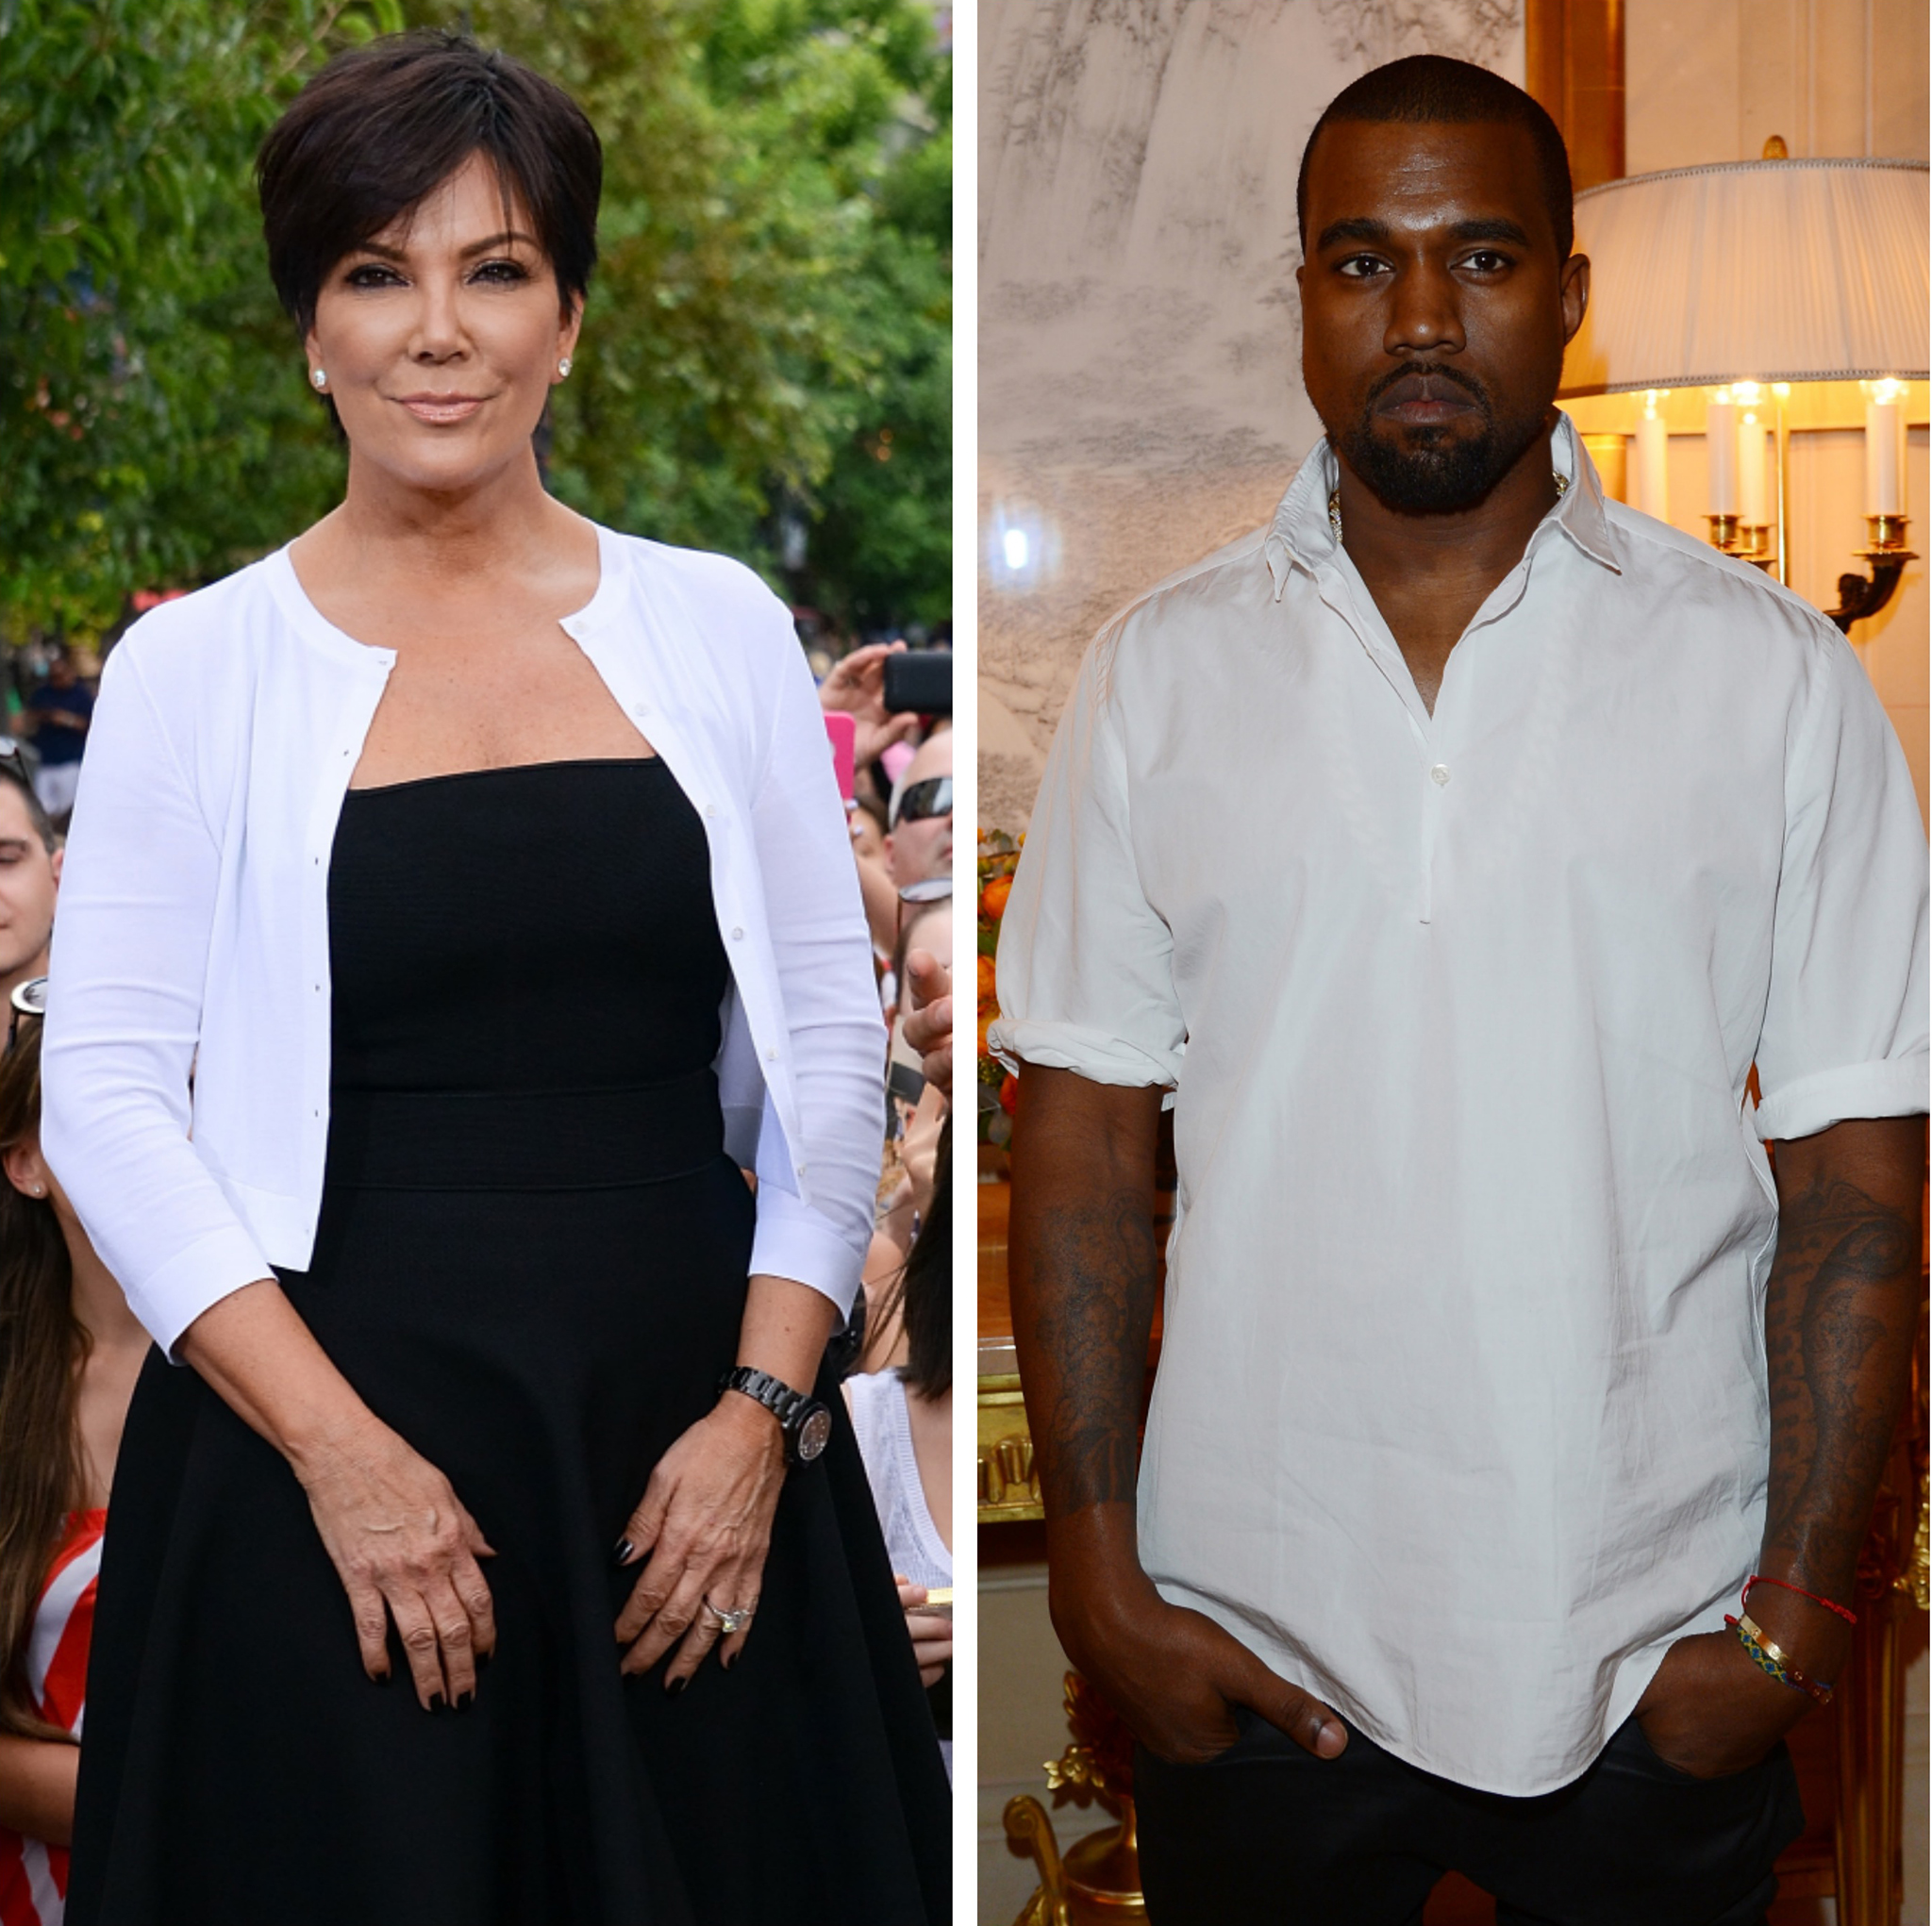 Kris Jenner sits down with Kanye West. (Getty Images)